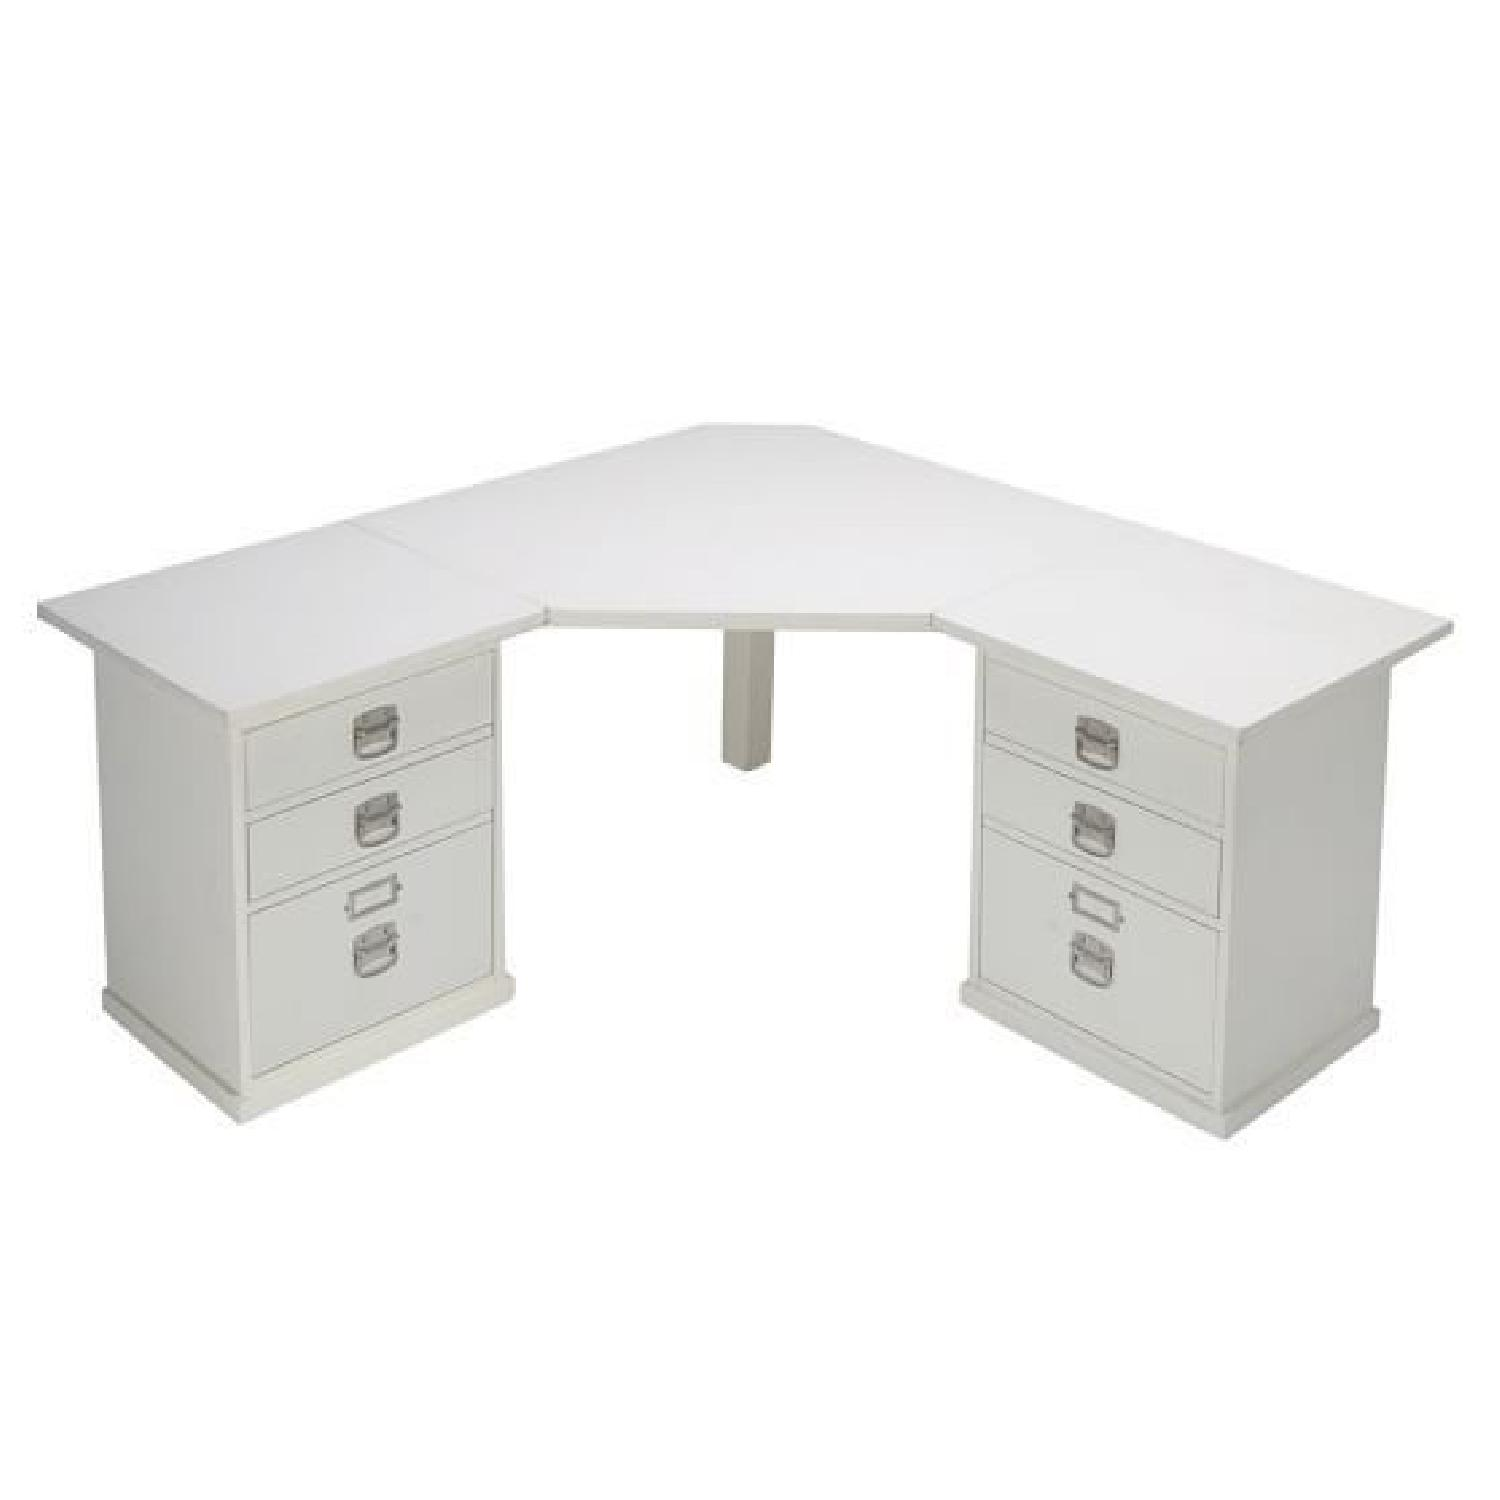 Pottery Barn Bedford Corner Desk w/ Hutch - image-11